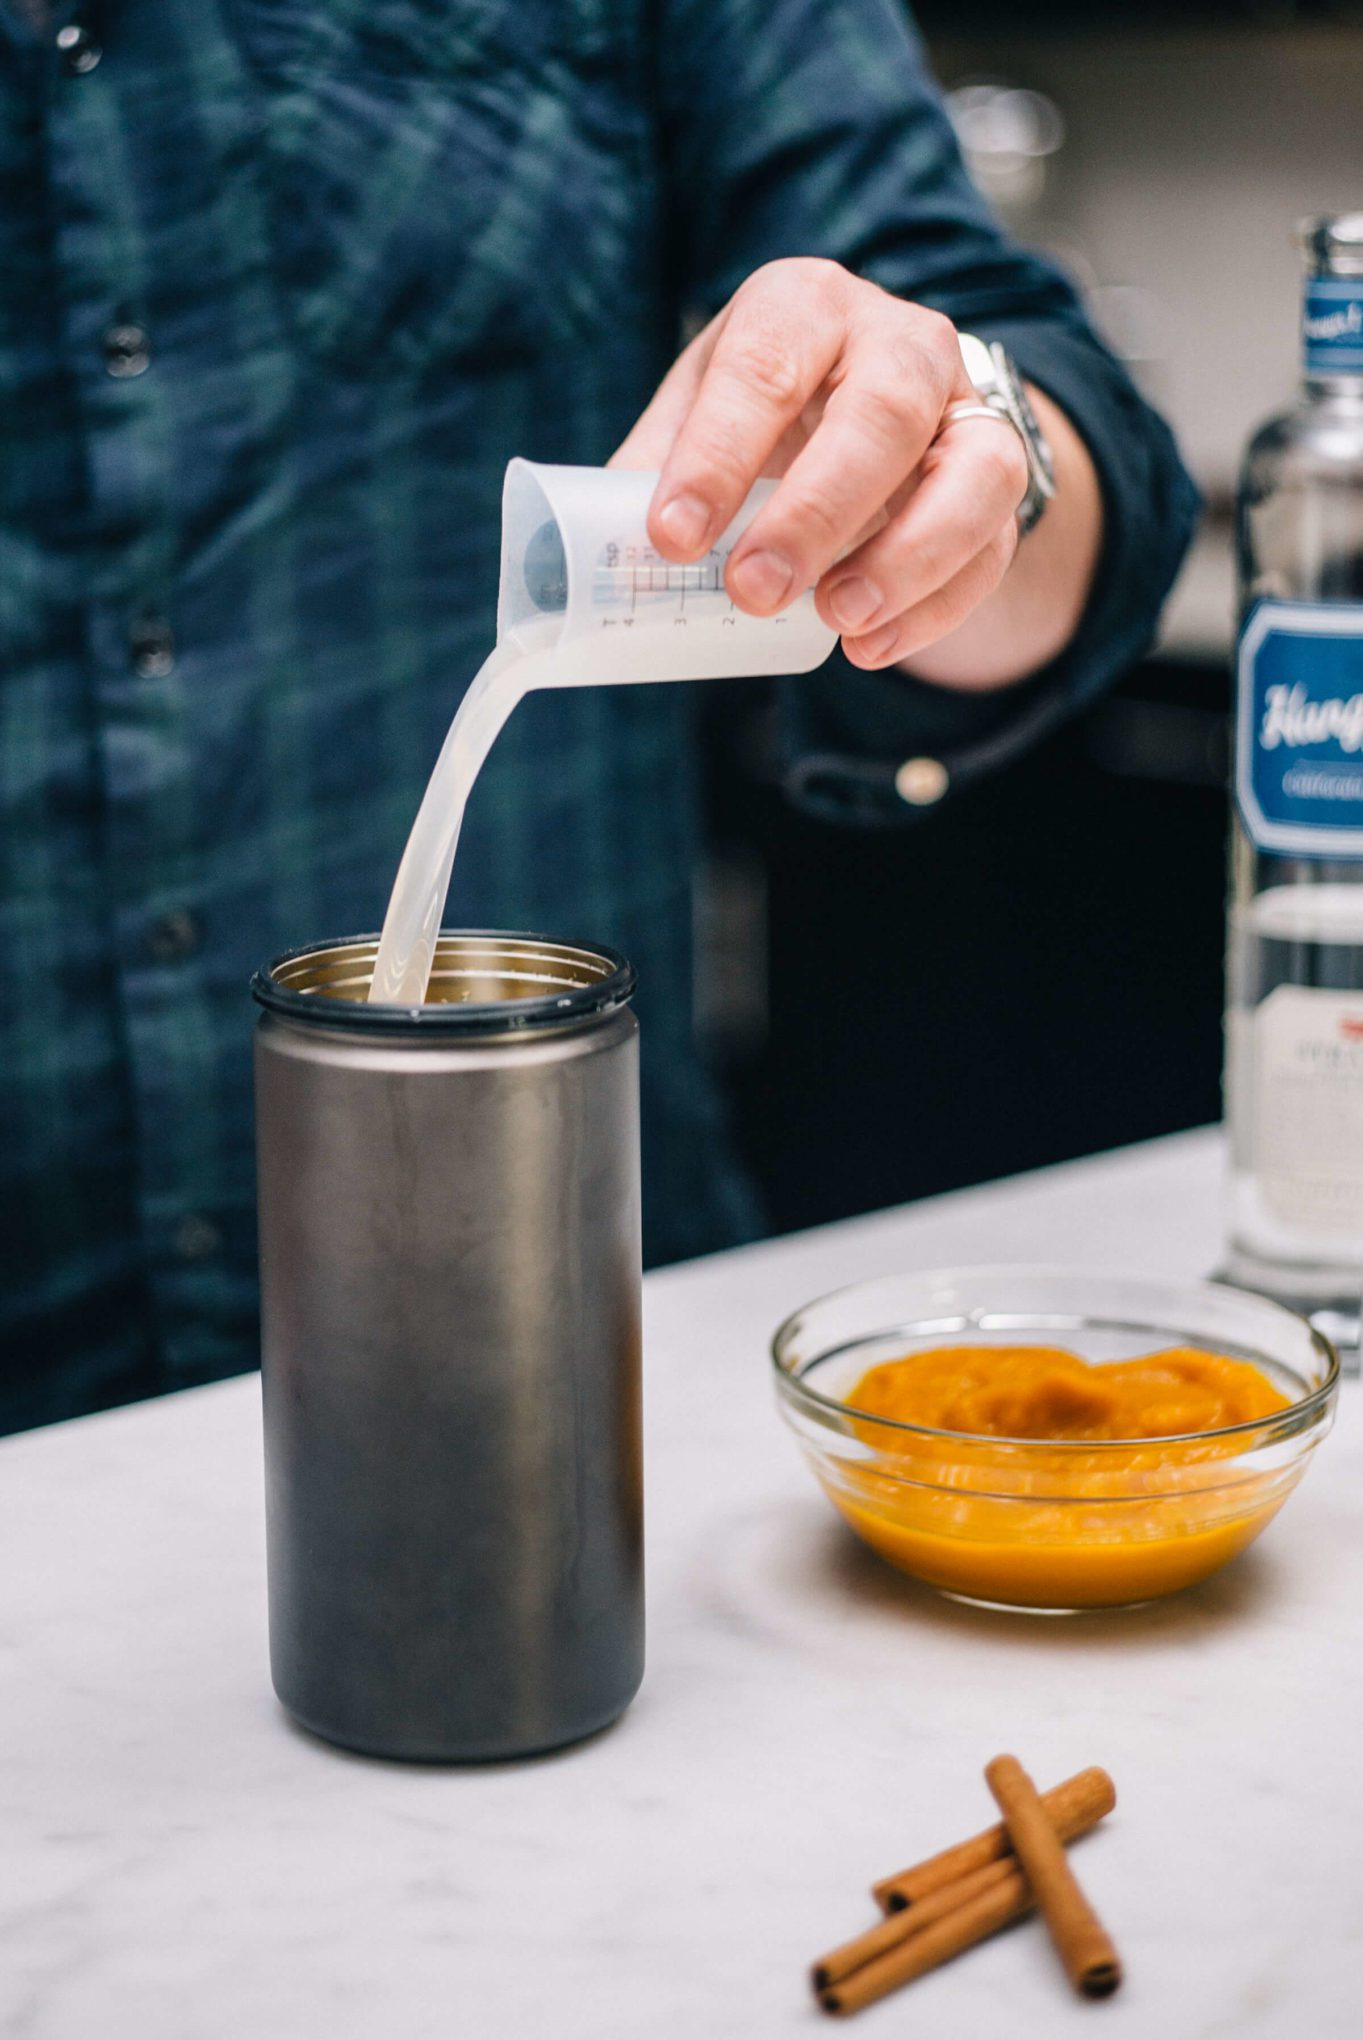 The Taste SF adds Horchata and Ginger Liquor with Hangar 1 Straight Vodka to make their Halloween Cocktail or Thanksgiving Cocktail, A Pumpkin Spice Cocktail